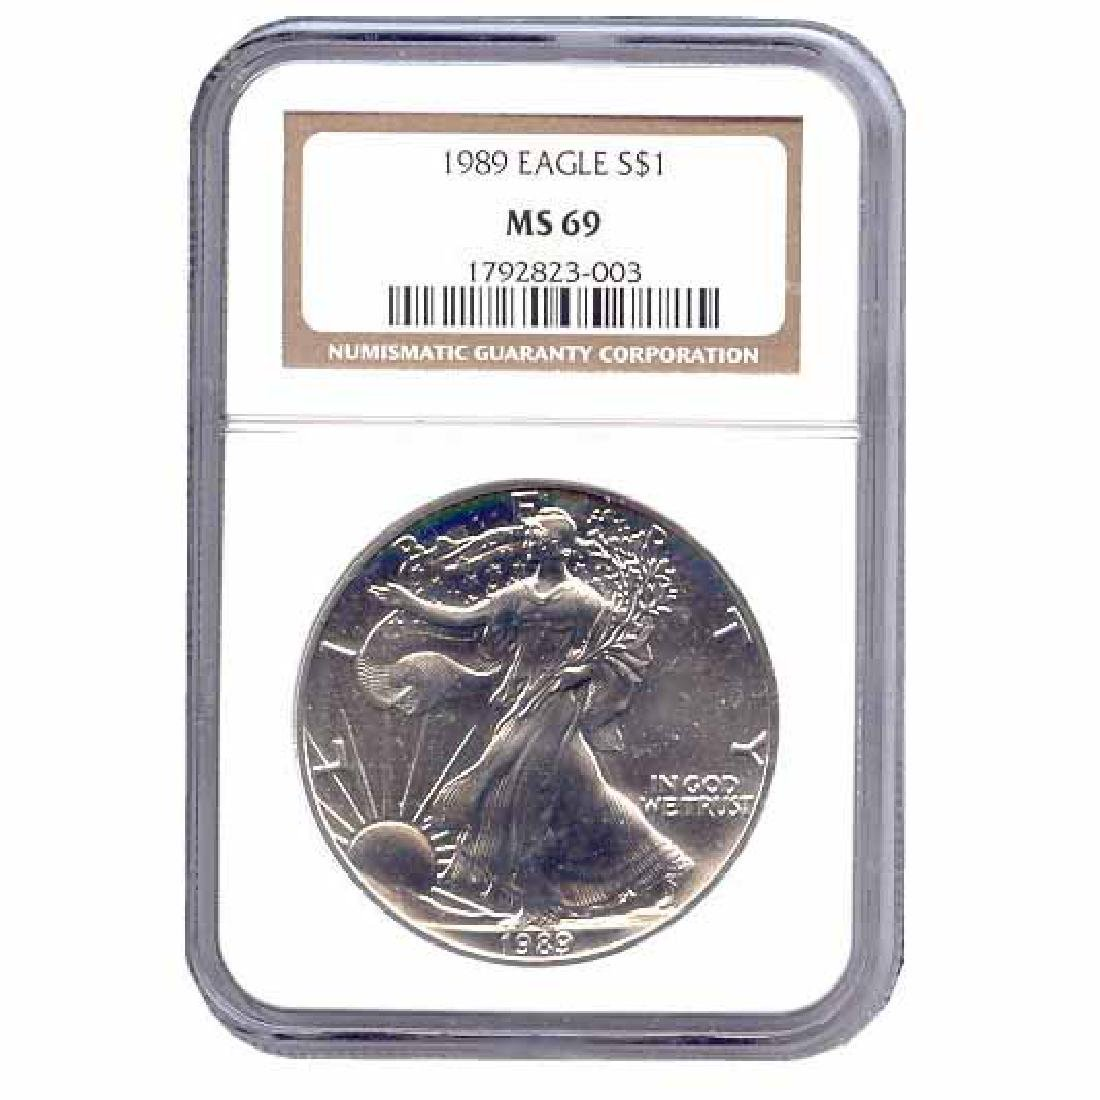 Certified Uncirculated Silver Eagle 1989 MS69